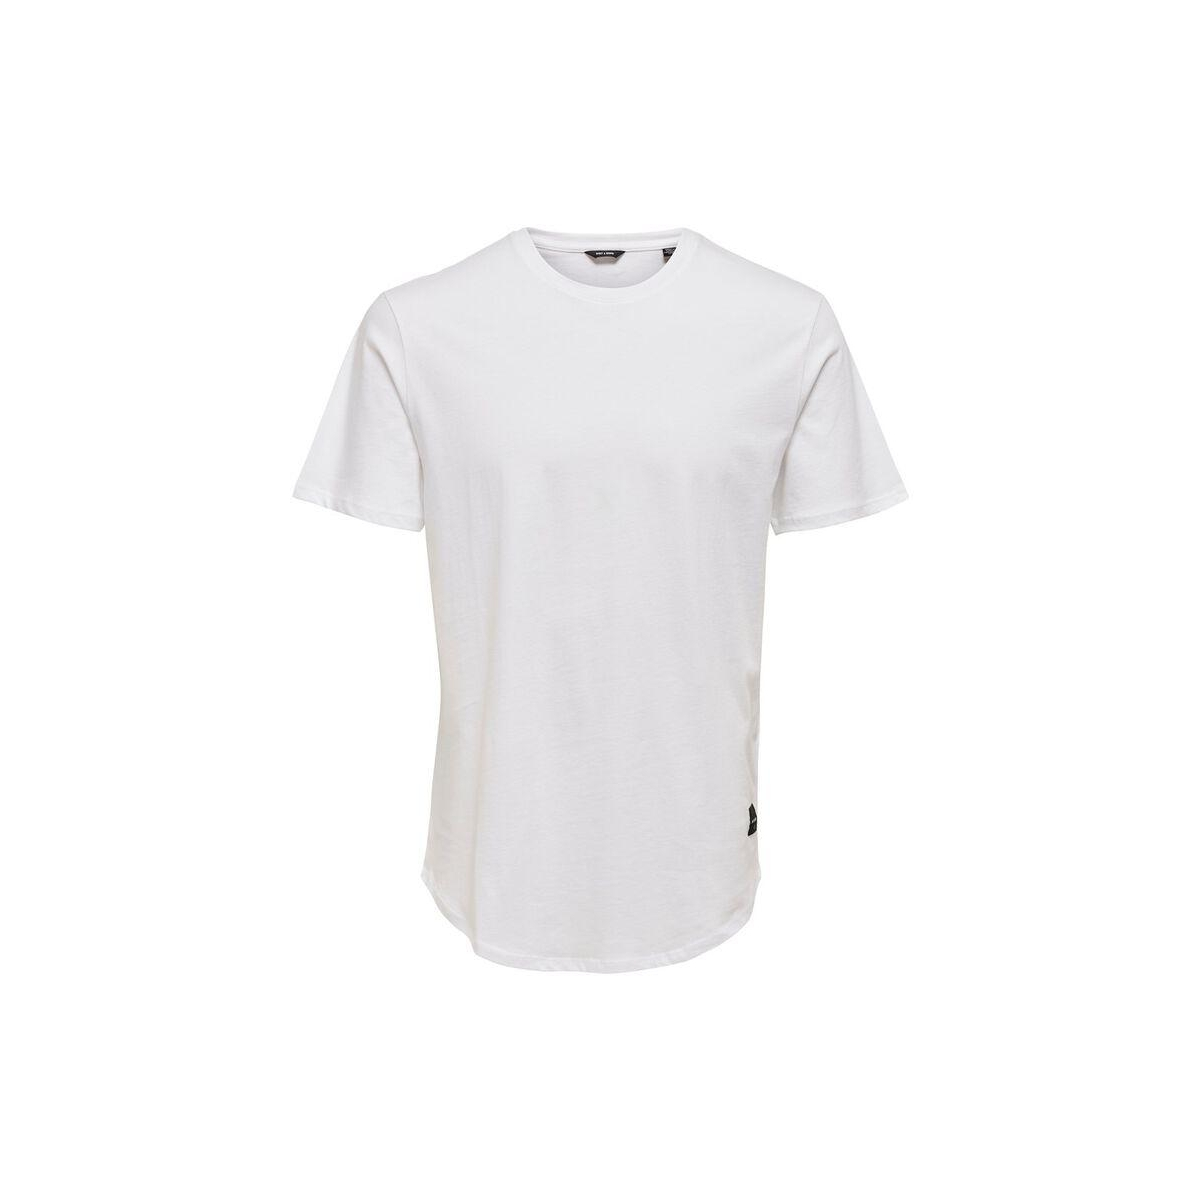 onsmatt longy ss tee noos 22002973 only & sons t-shirt white